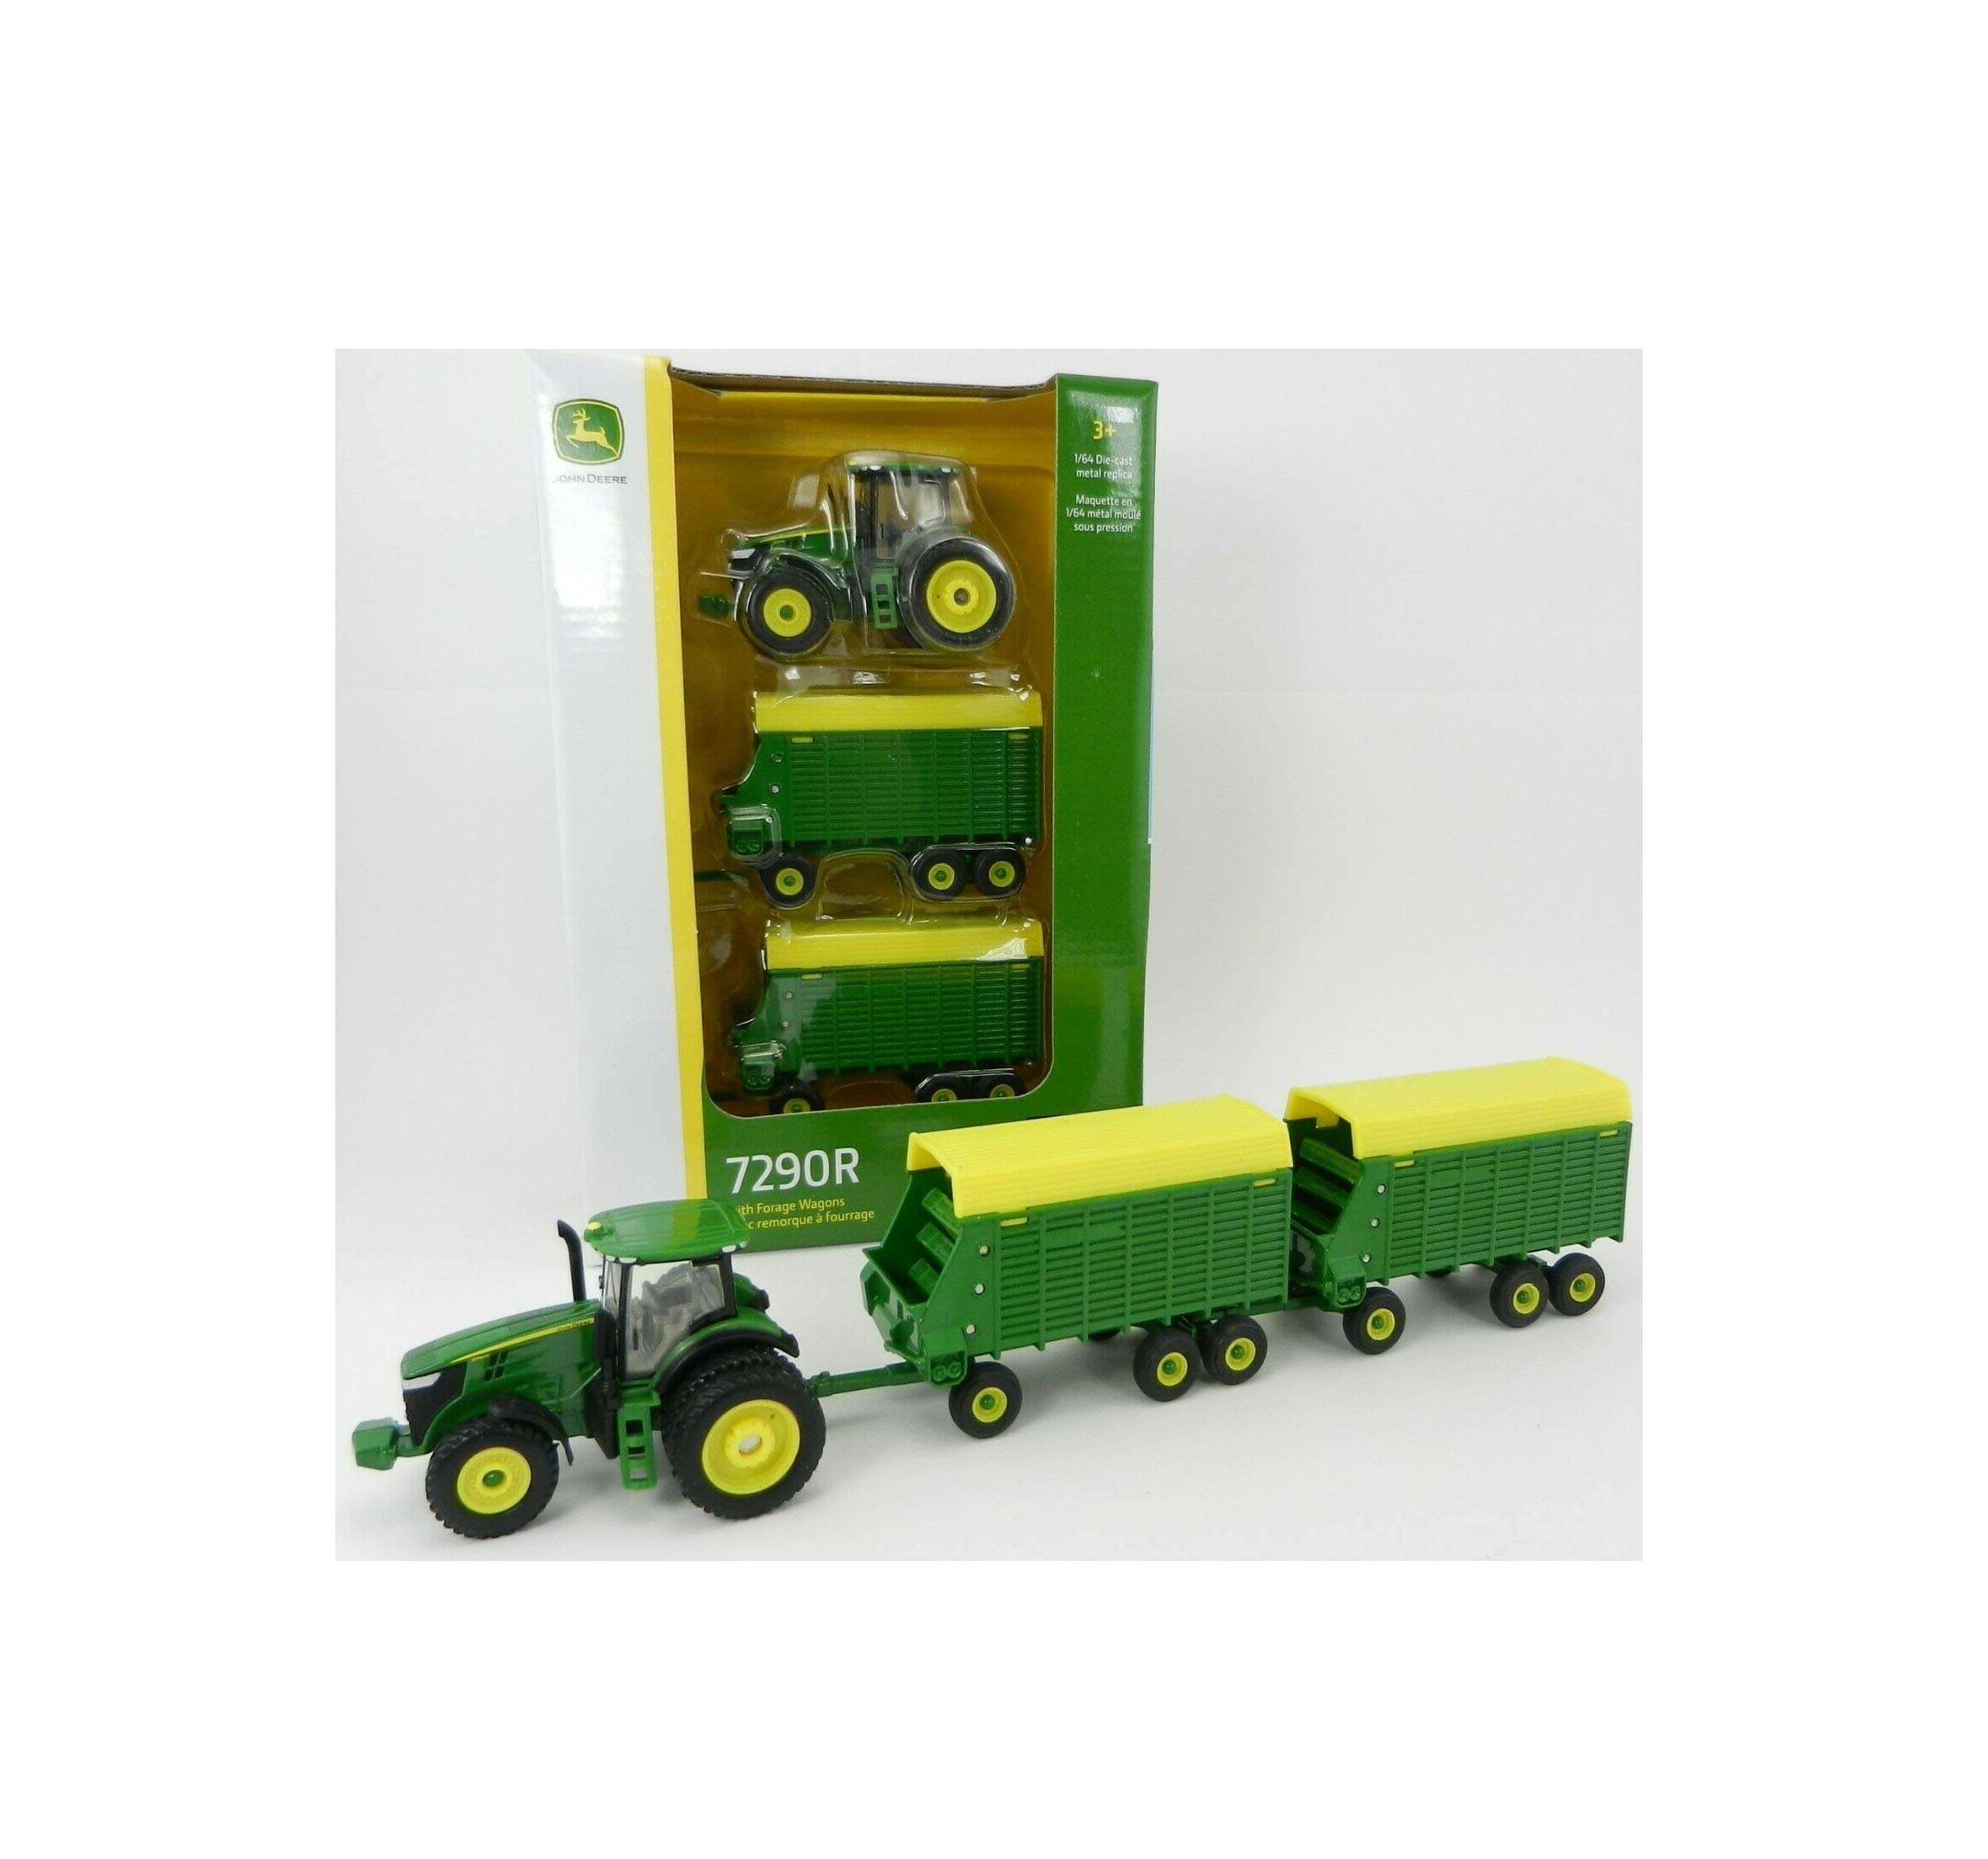 2019 1:64 J0HN DEEREE Model 7290R Tractor & 2 Tandem Axle Forage Wagon Nib Love Gift